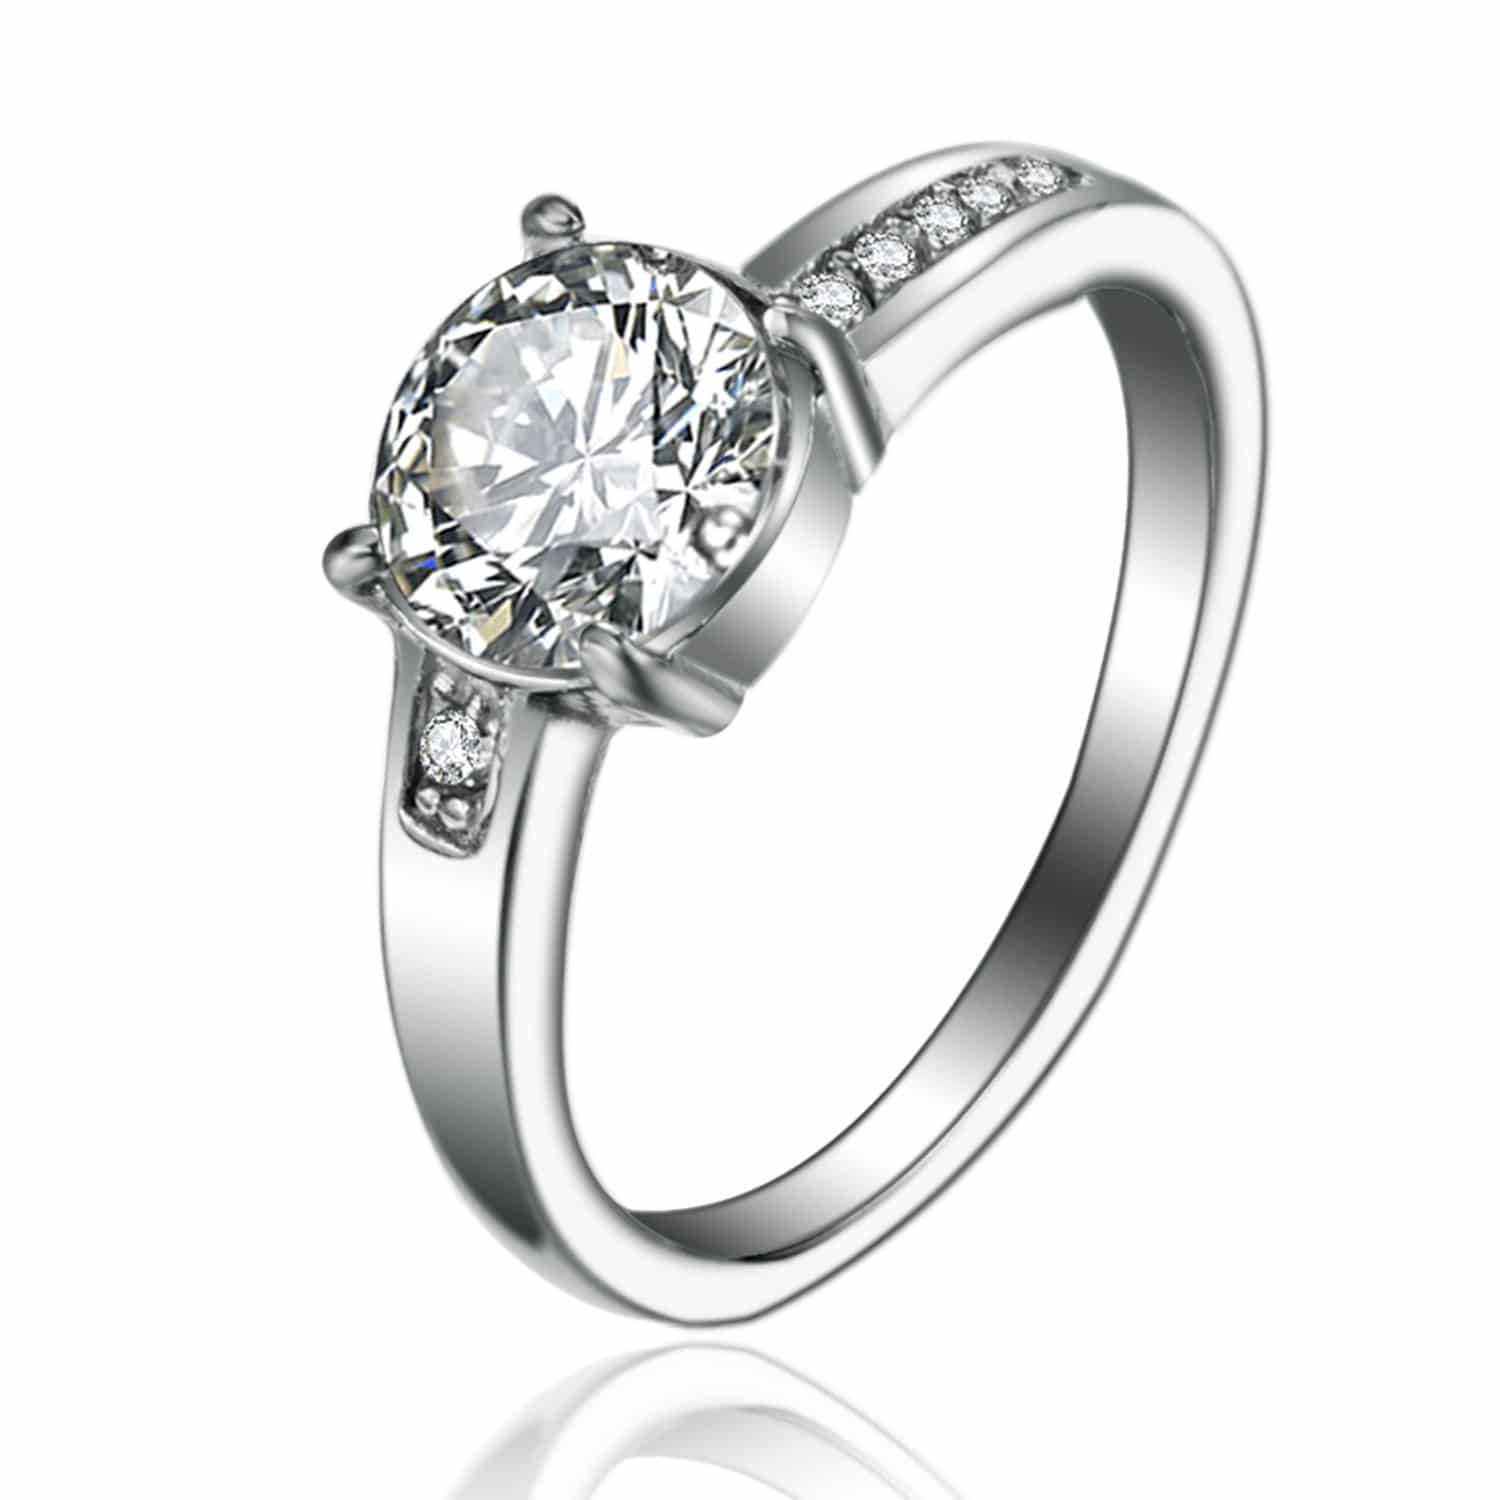 White gold non diamond engagement rings with swarovski crystals